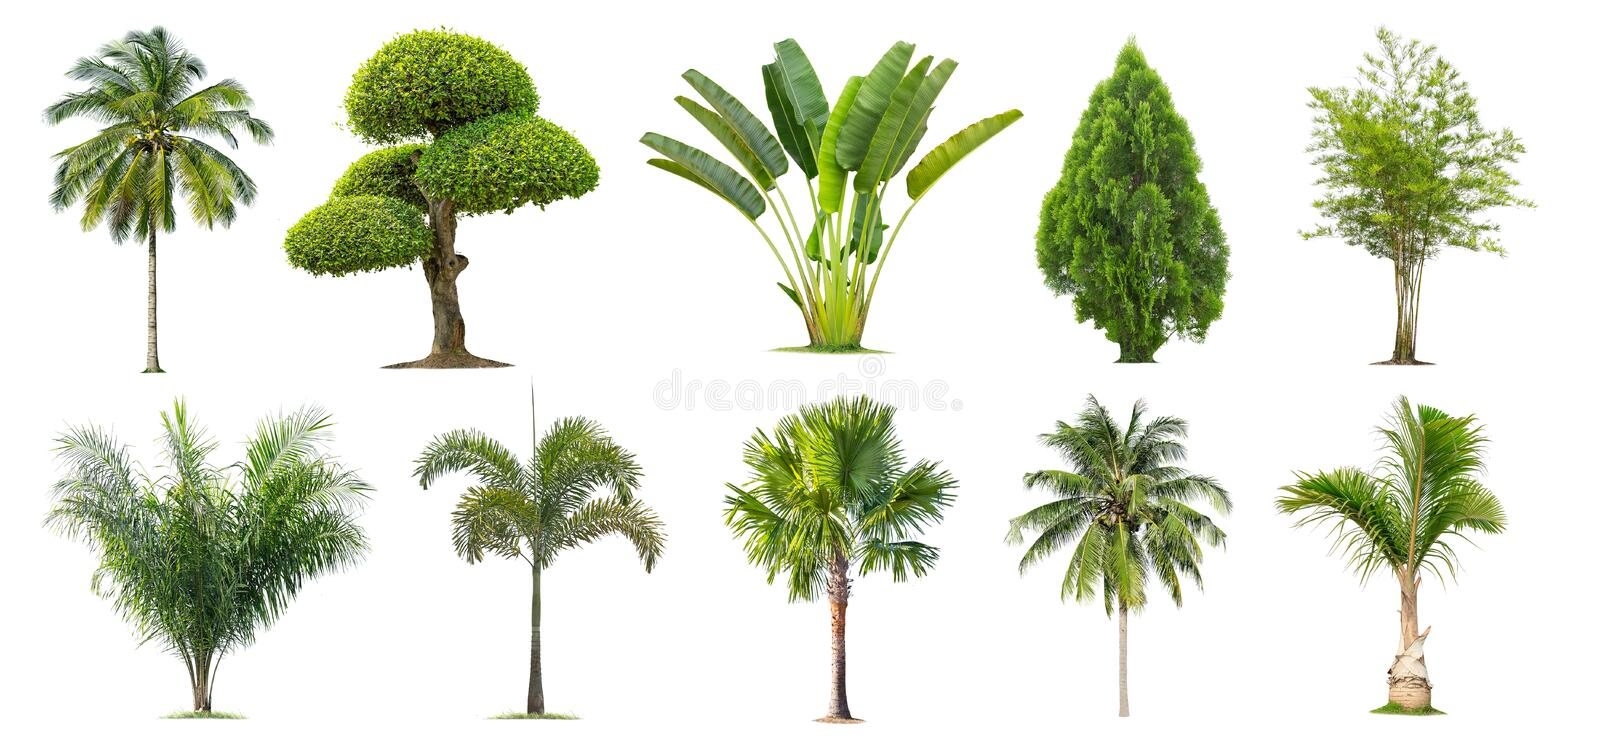 Coconut and palm trees,Bamboo,Banana ,Tako , Isolated tree on white background , royalty free stock images